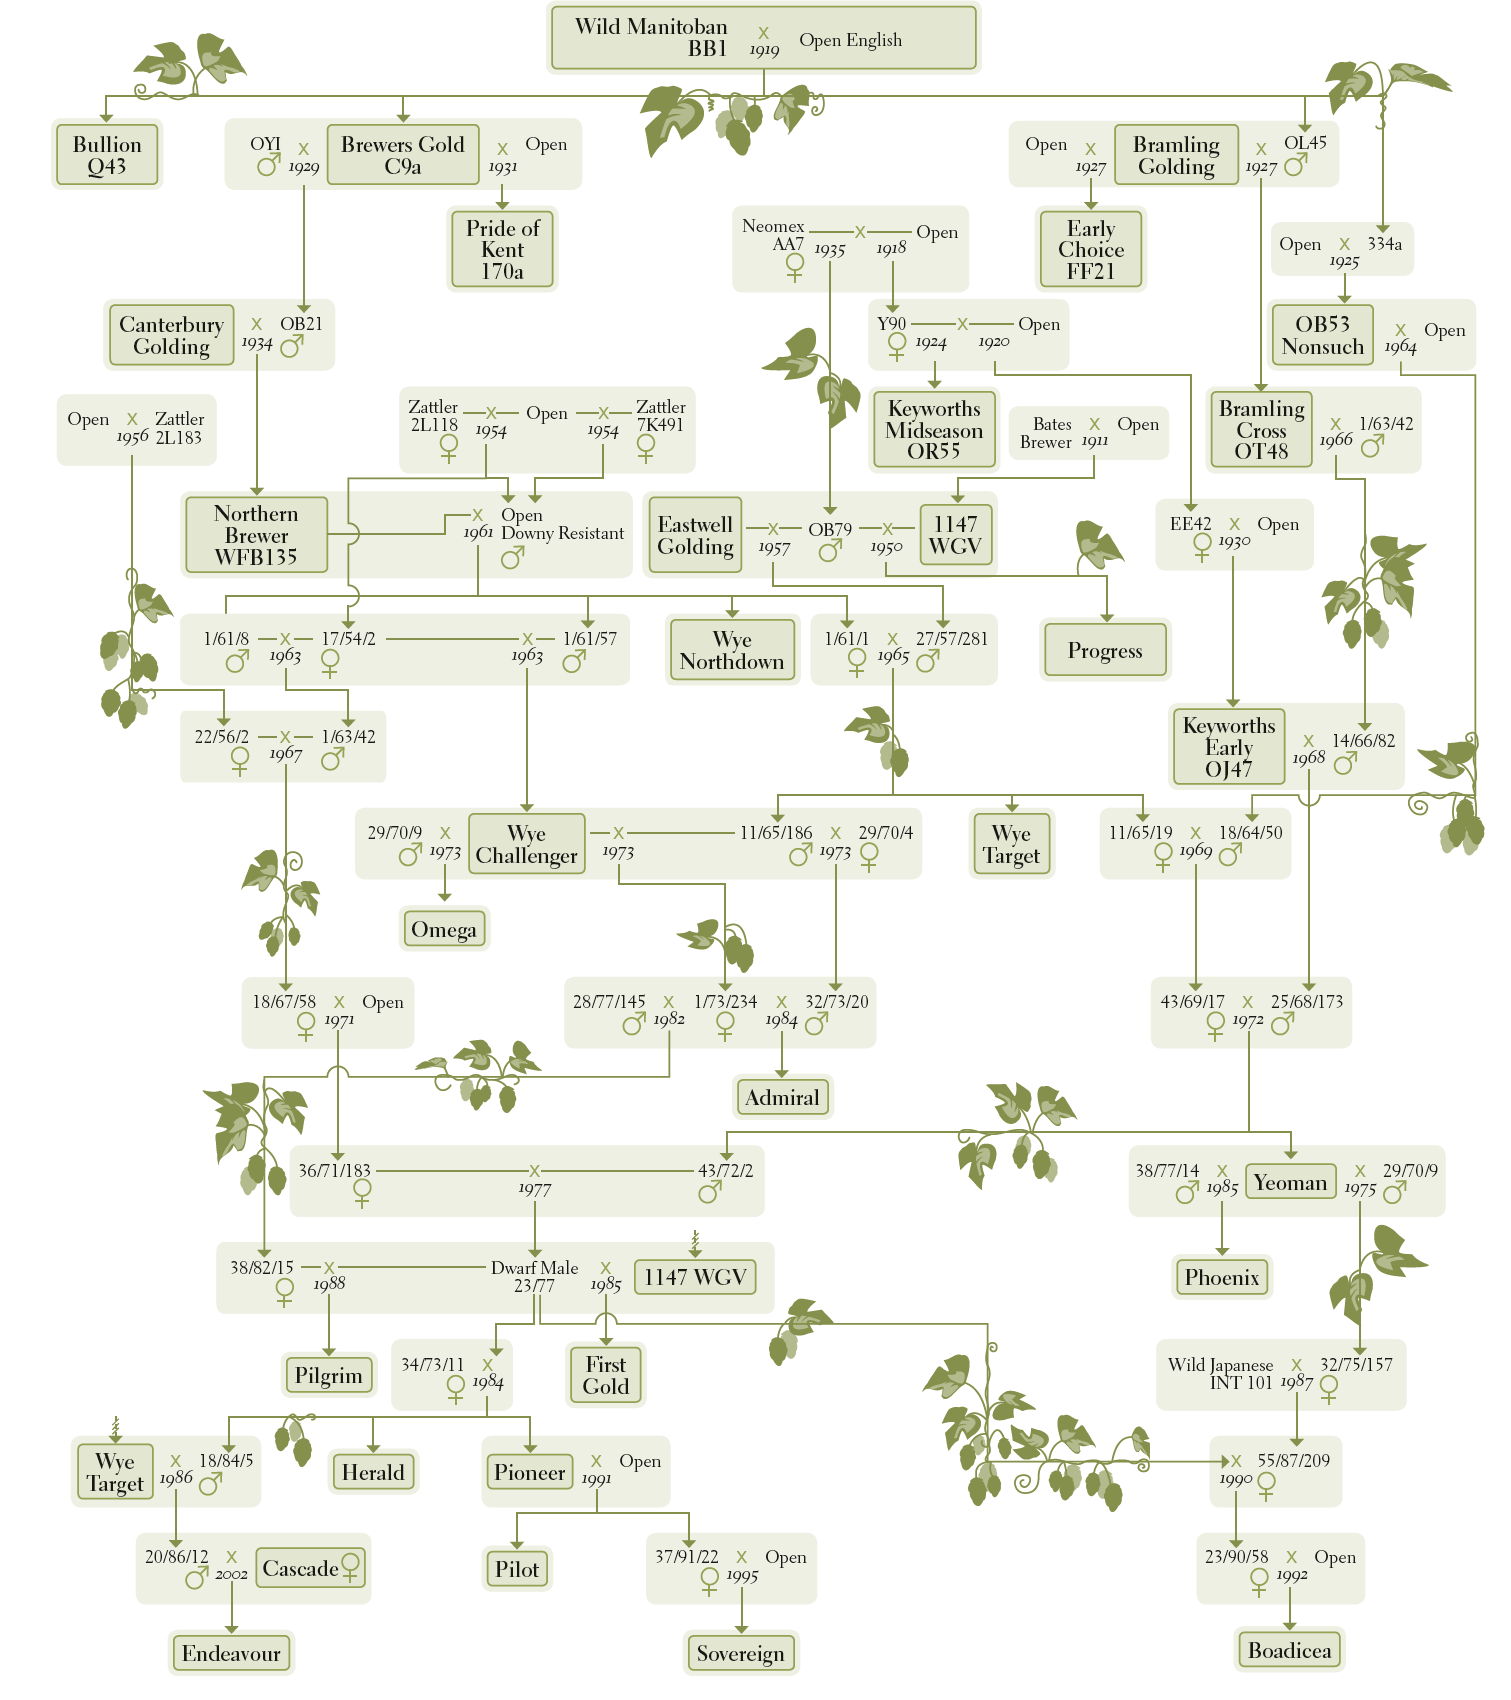 Picture of the family tree of British hop varieties